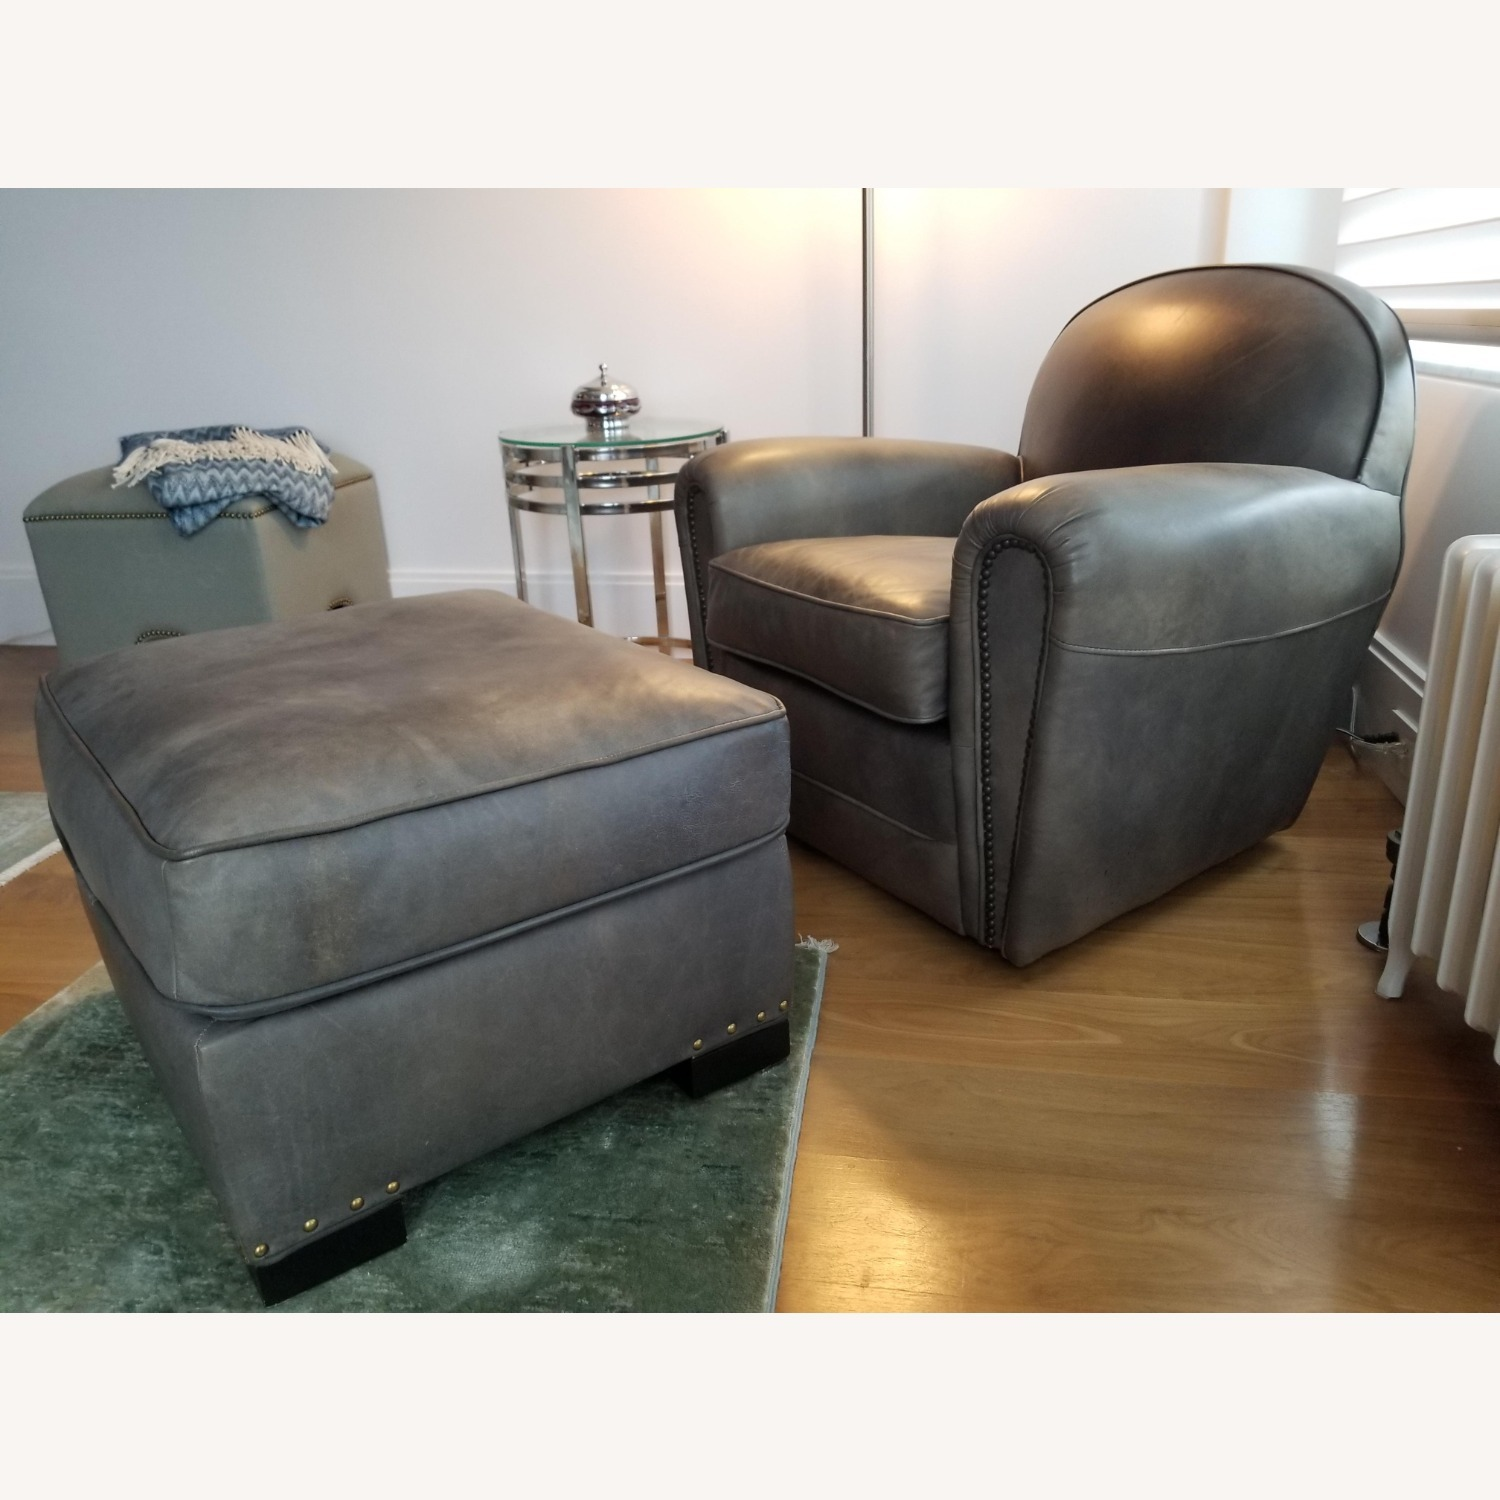 Restoration Hardware Gray Leather Club Chair - image-4